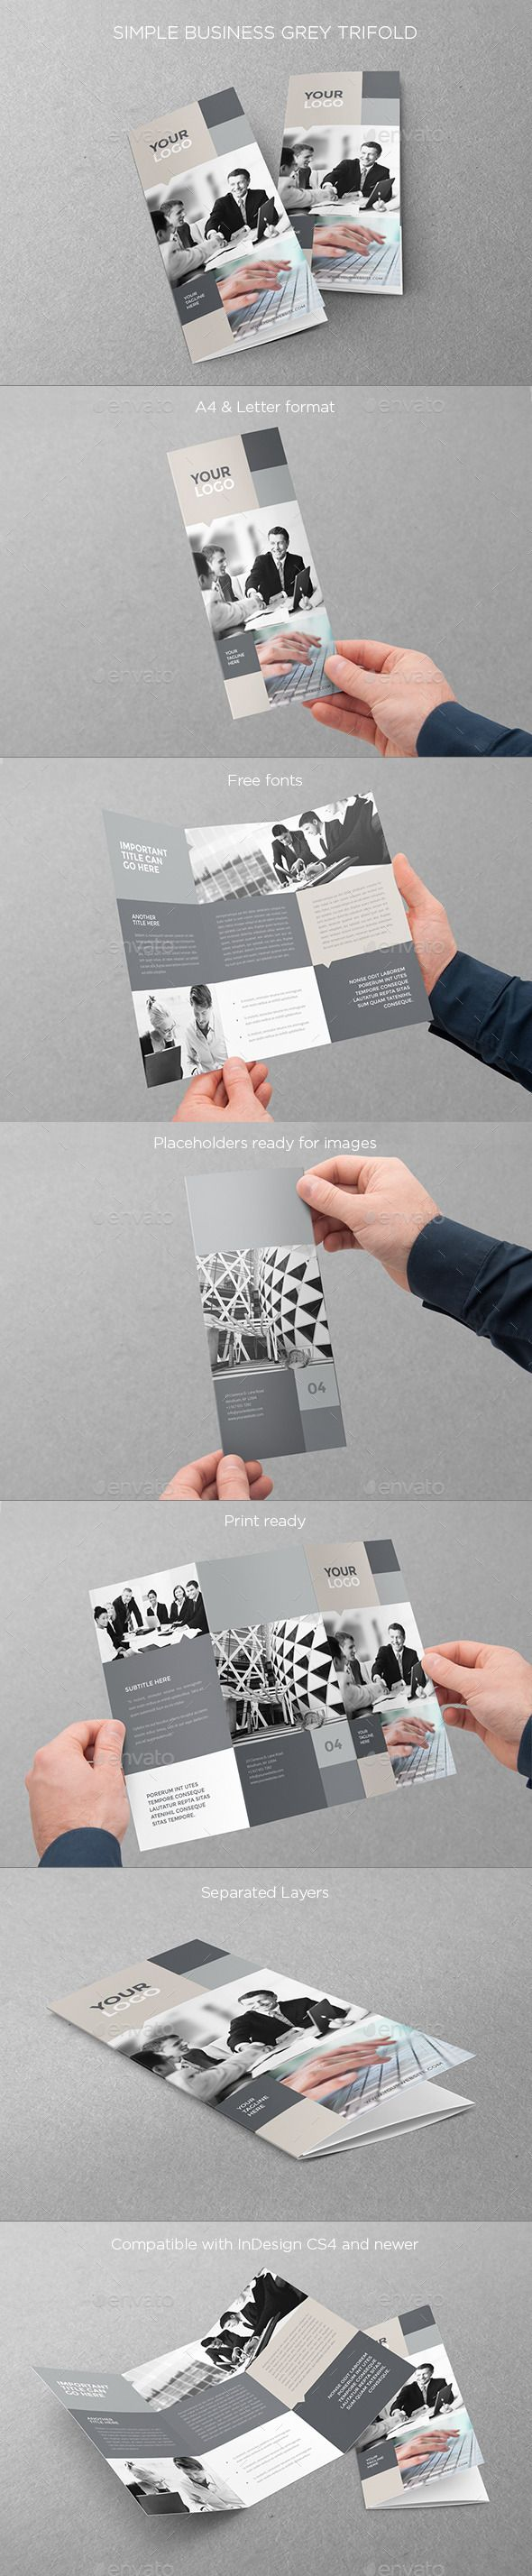 Simple Business Grey Trifold Brochure Template #design #brochure Download: http://graphicriver.net/item/simple-business-grey-trifold/11370585?ref=ksioks